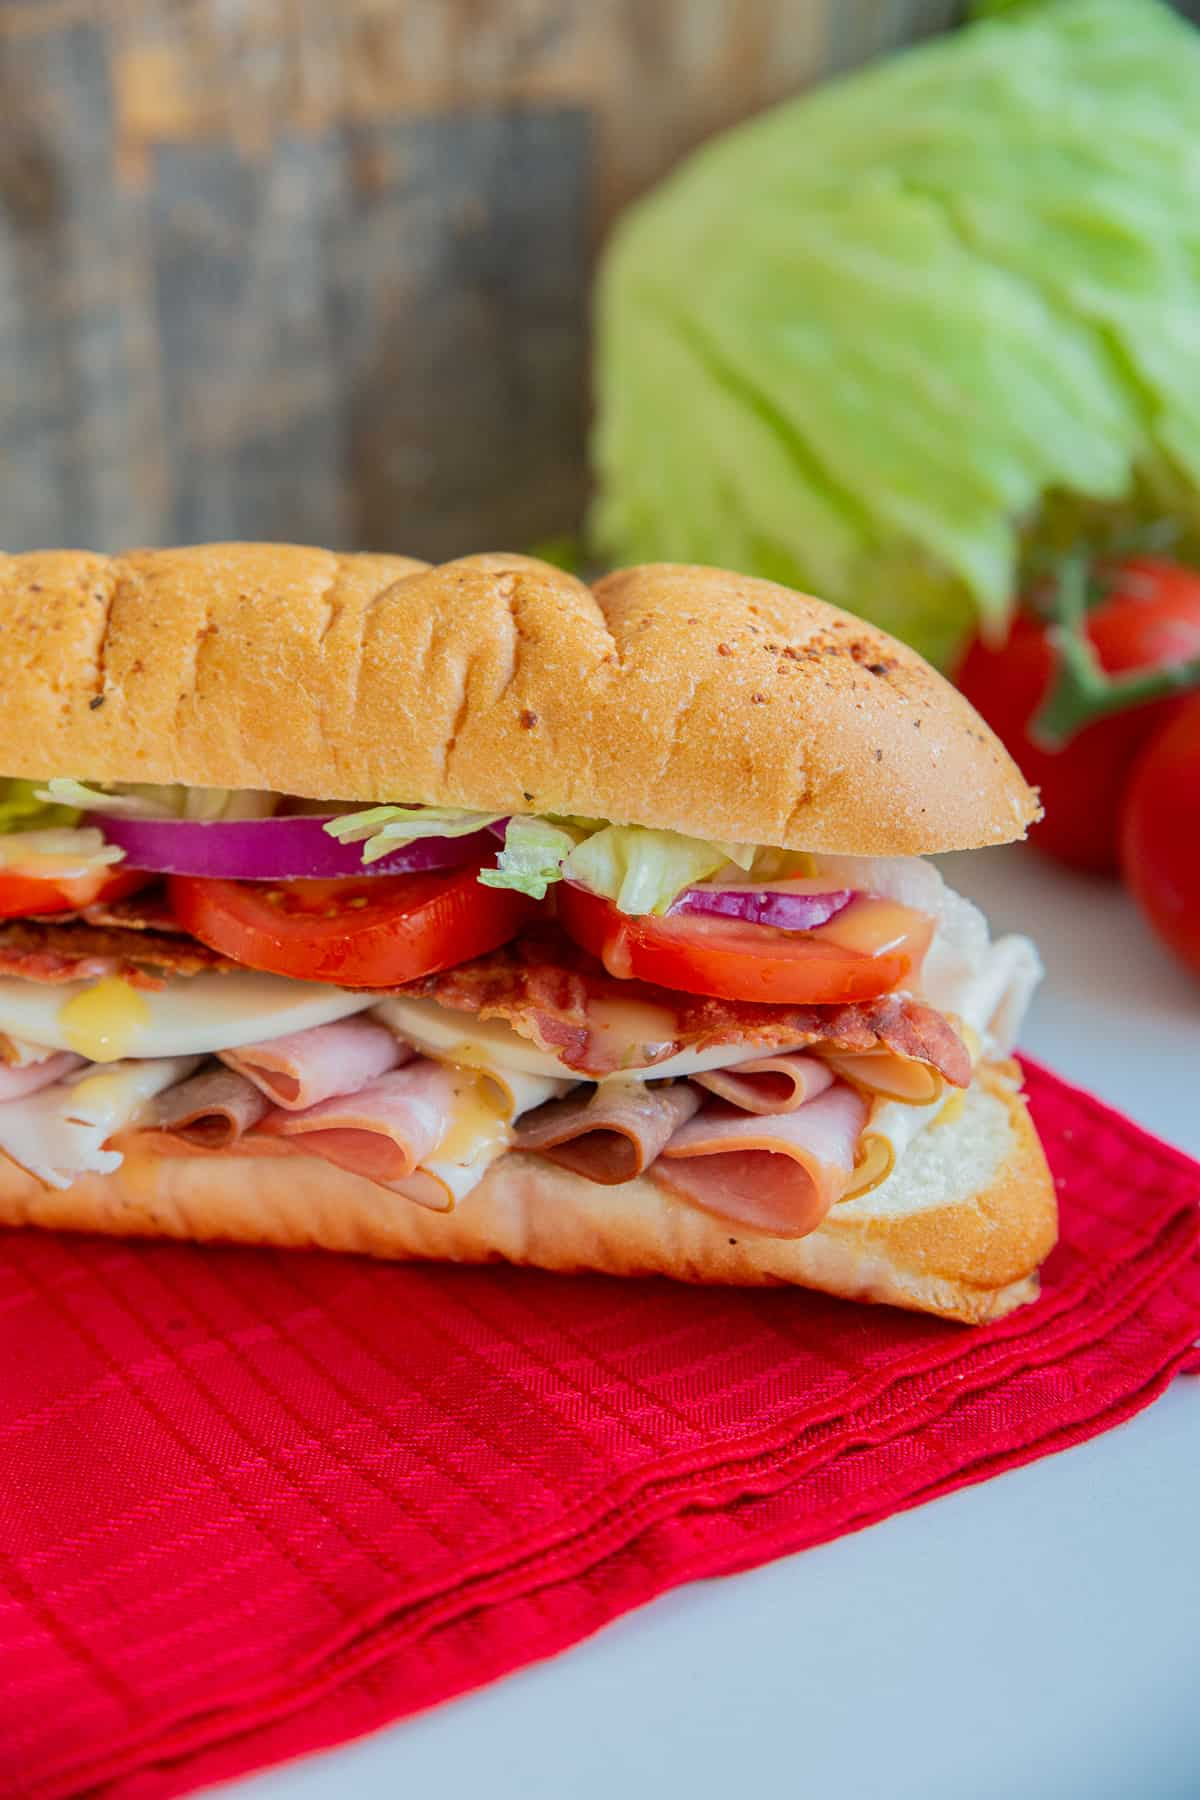 close up Submarine Sandwich on a red napkin with tomatoes and lettuce.